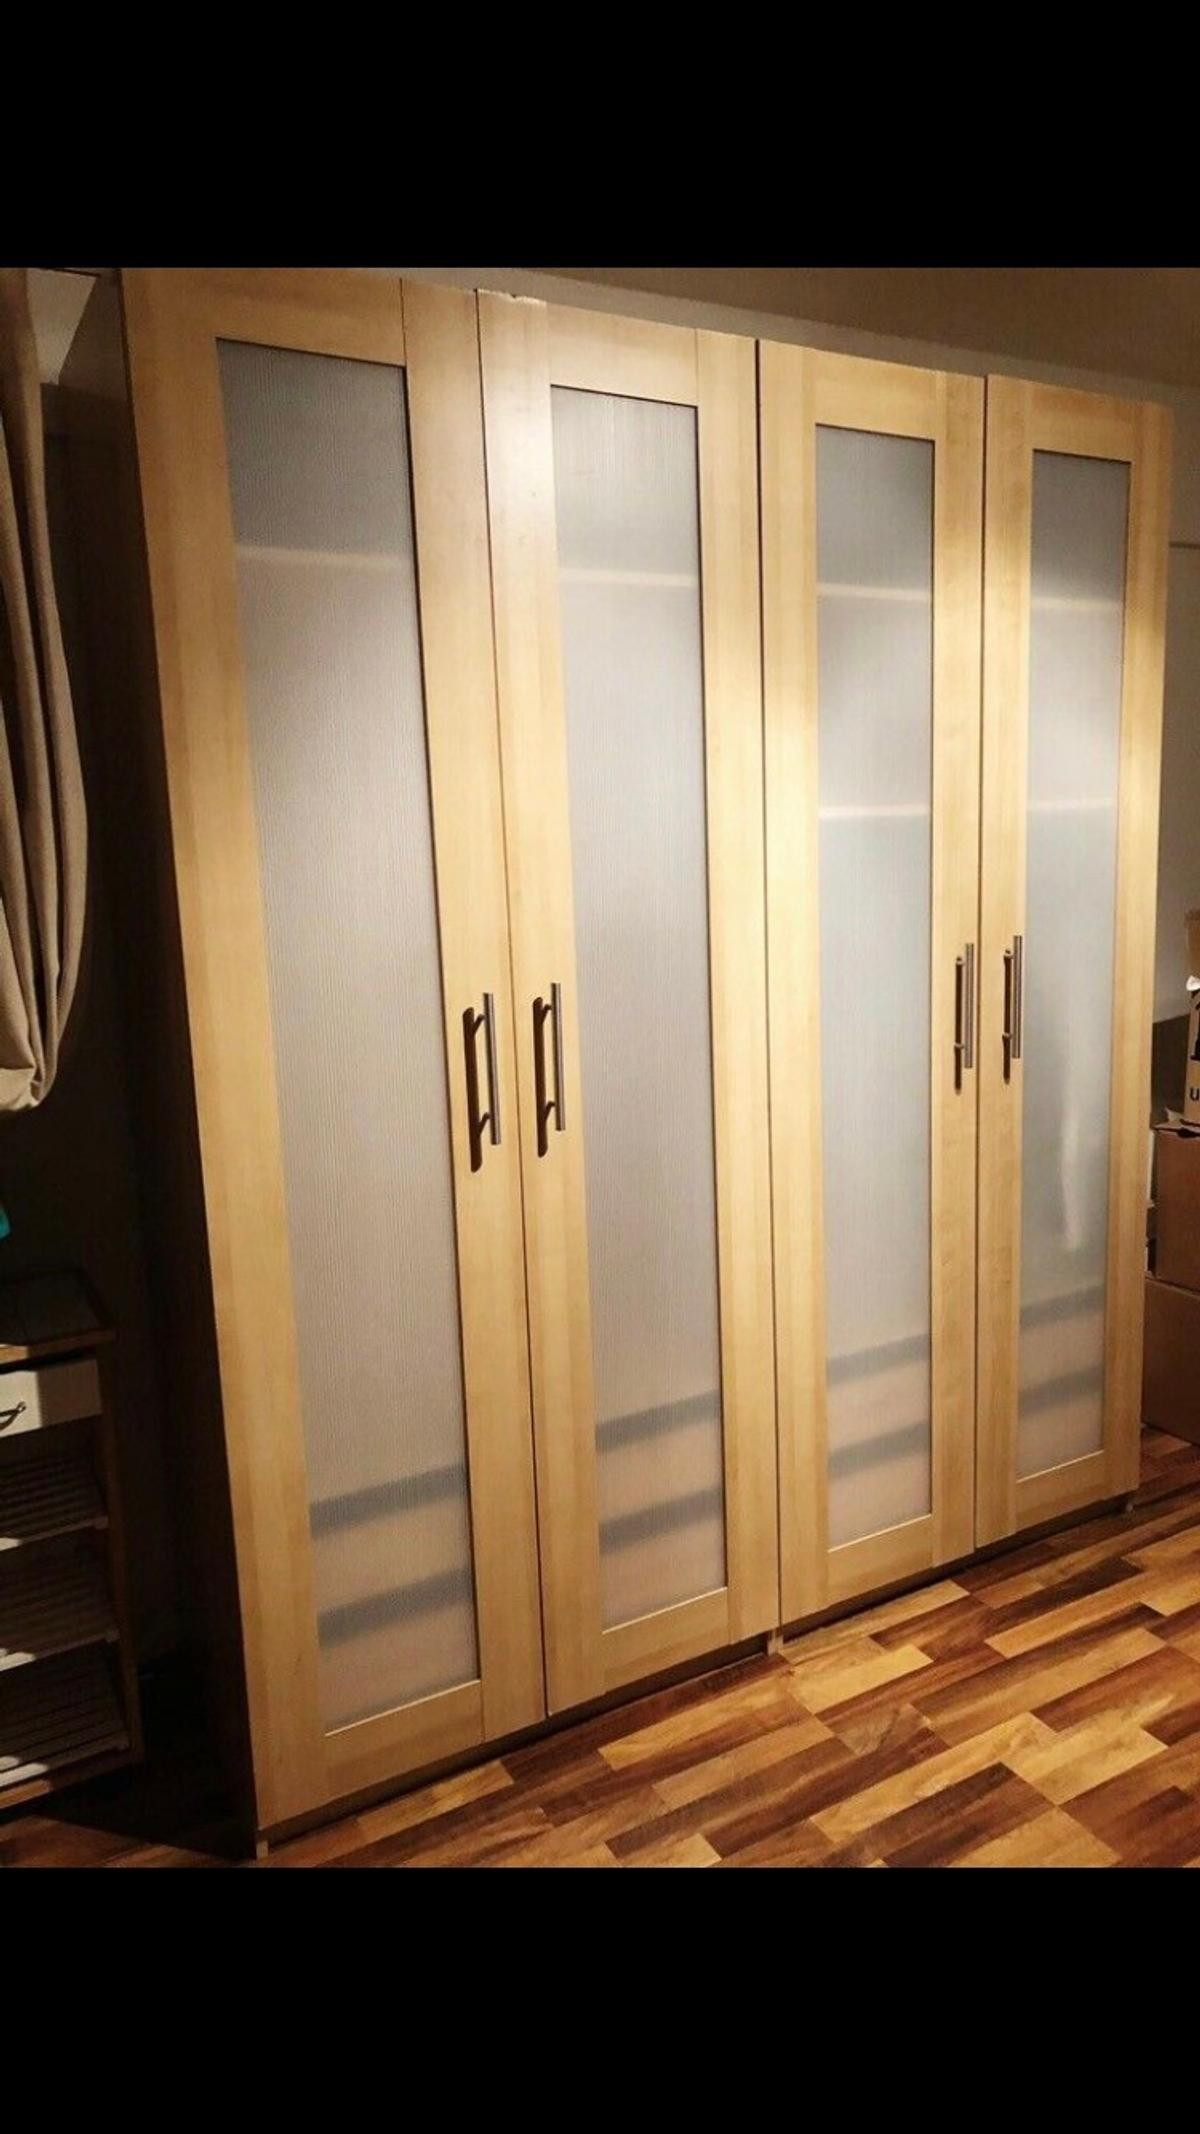 Ikea Pax Holz Schrank In 45127 Essen For 190 00 For Sale Shpock